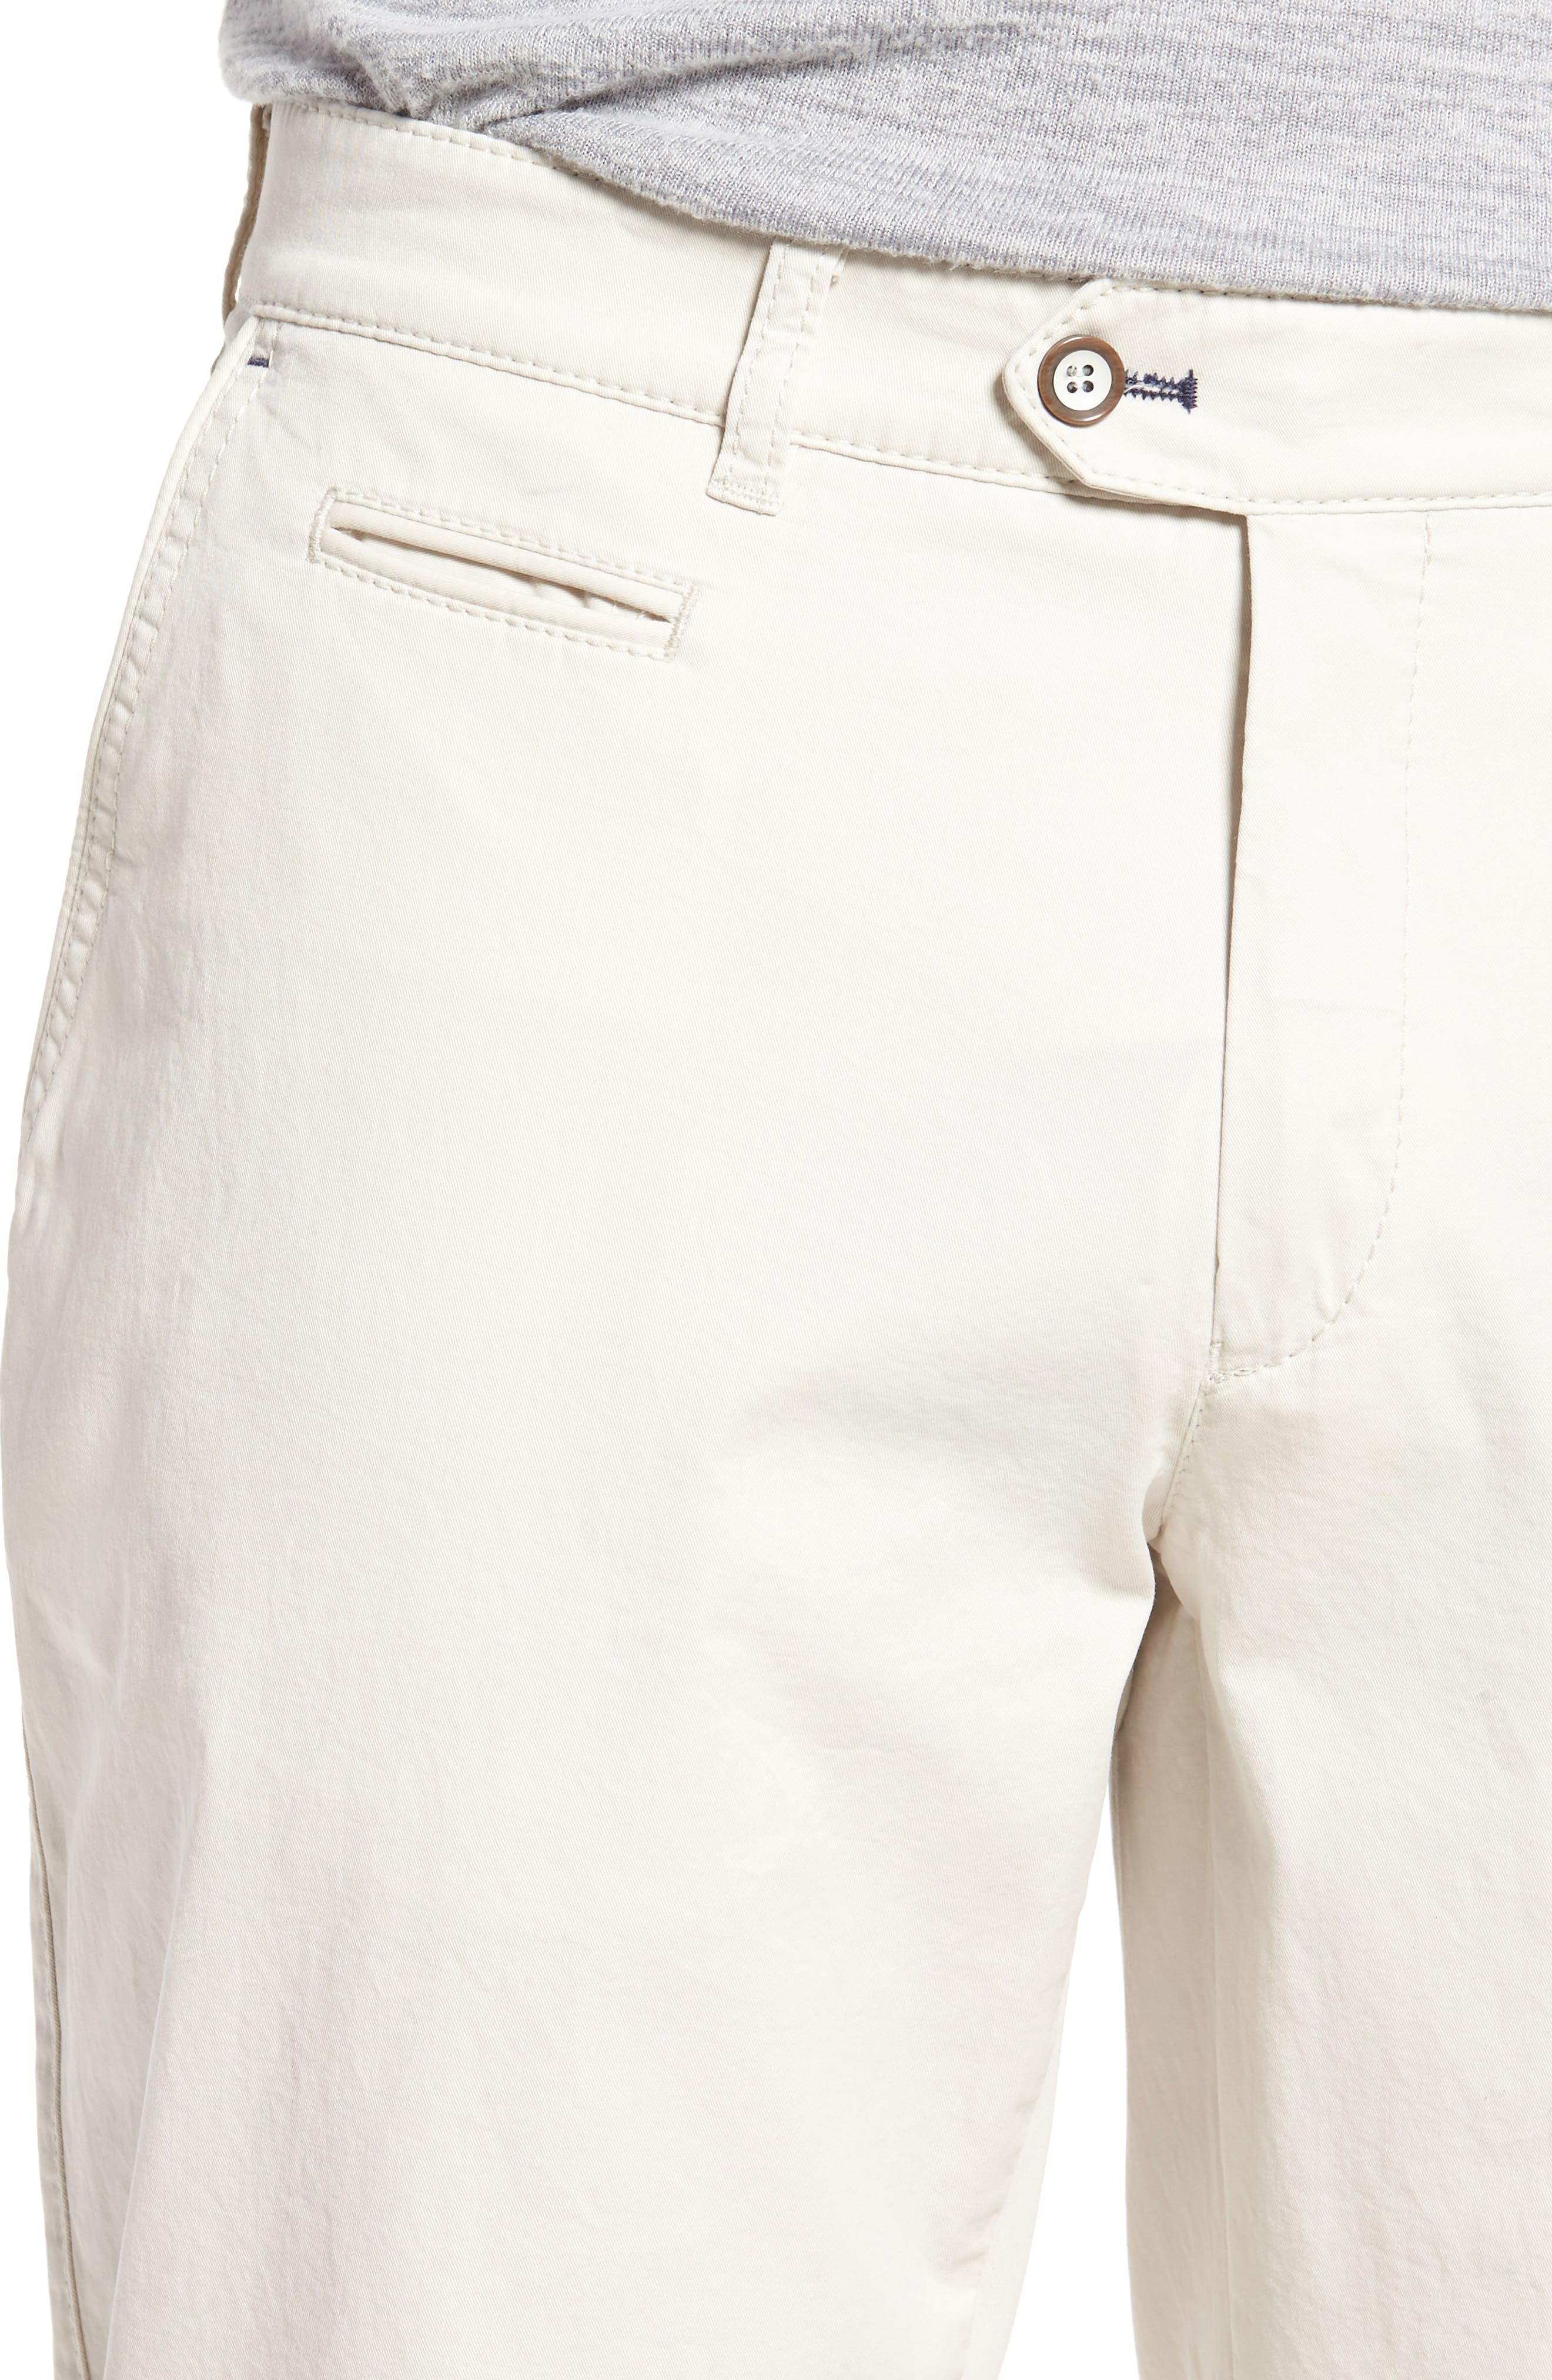 Everest Flat Front Chinos,                             Alternate thumbnail 7, color,